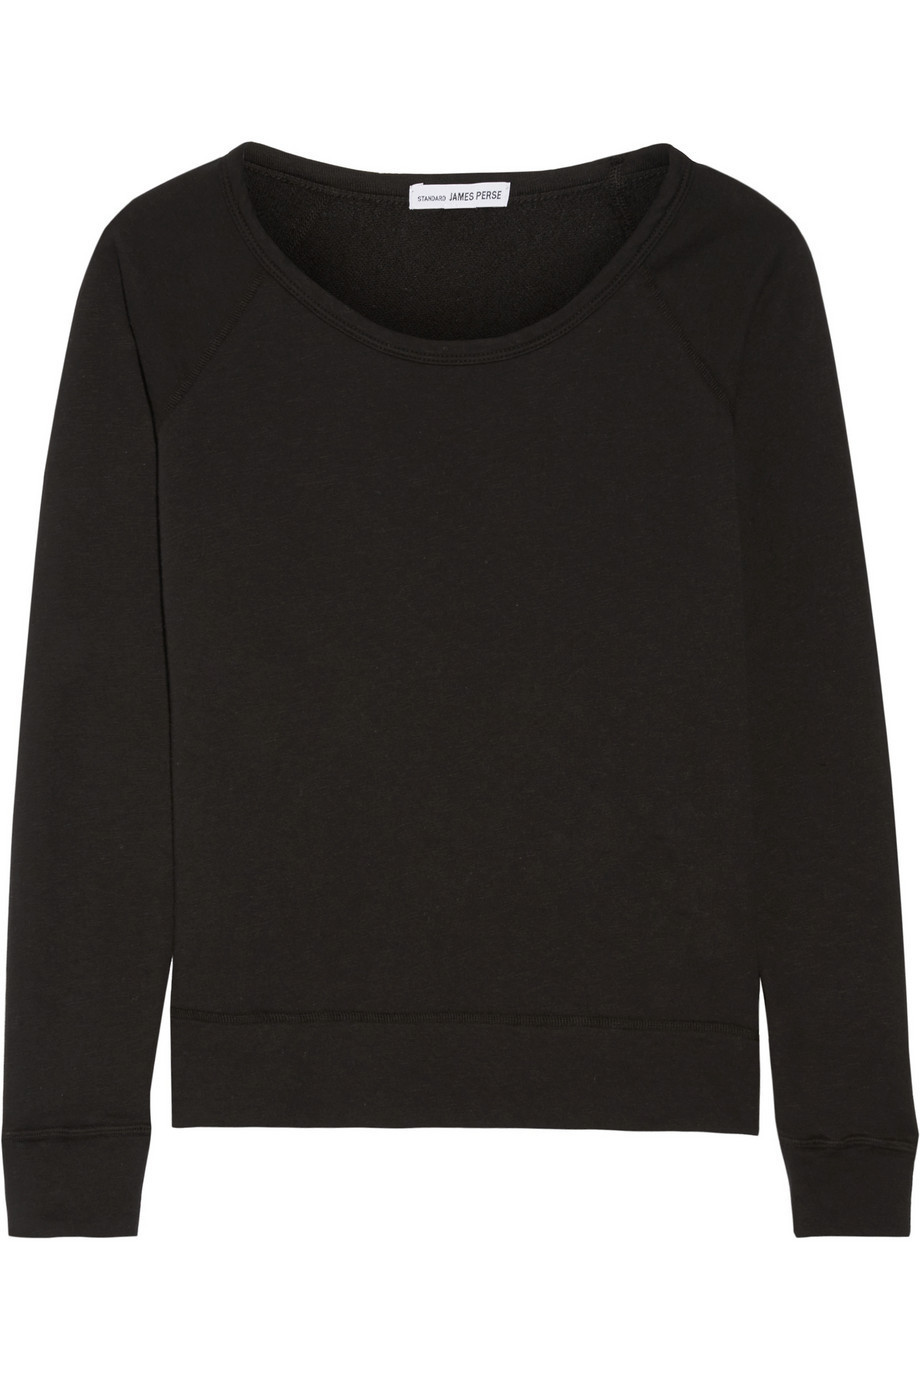 James Perse Vintage Supima Cotton-Terry Top in black